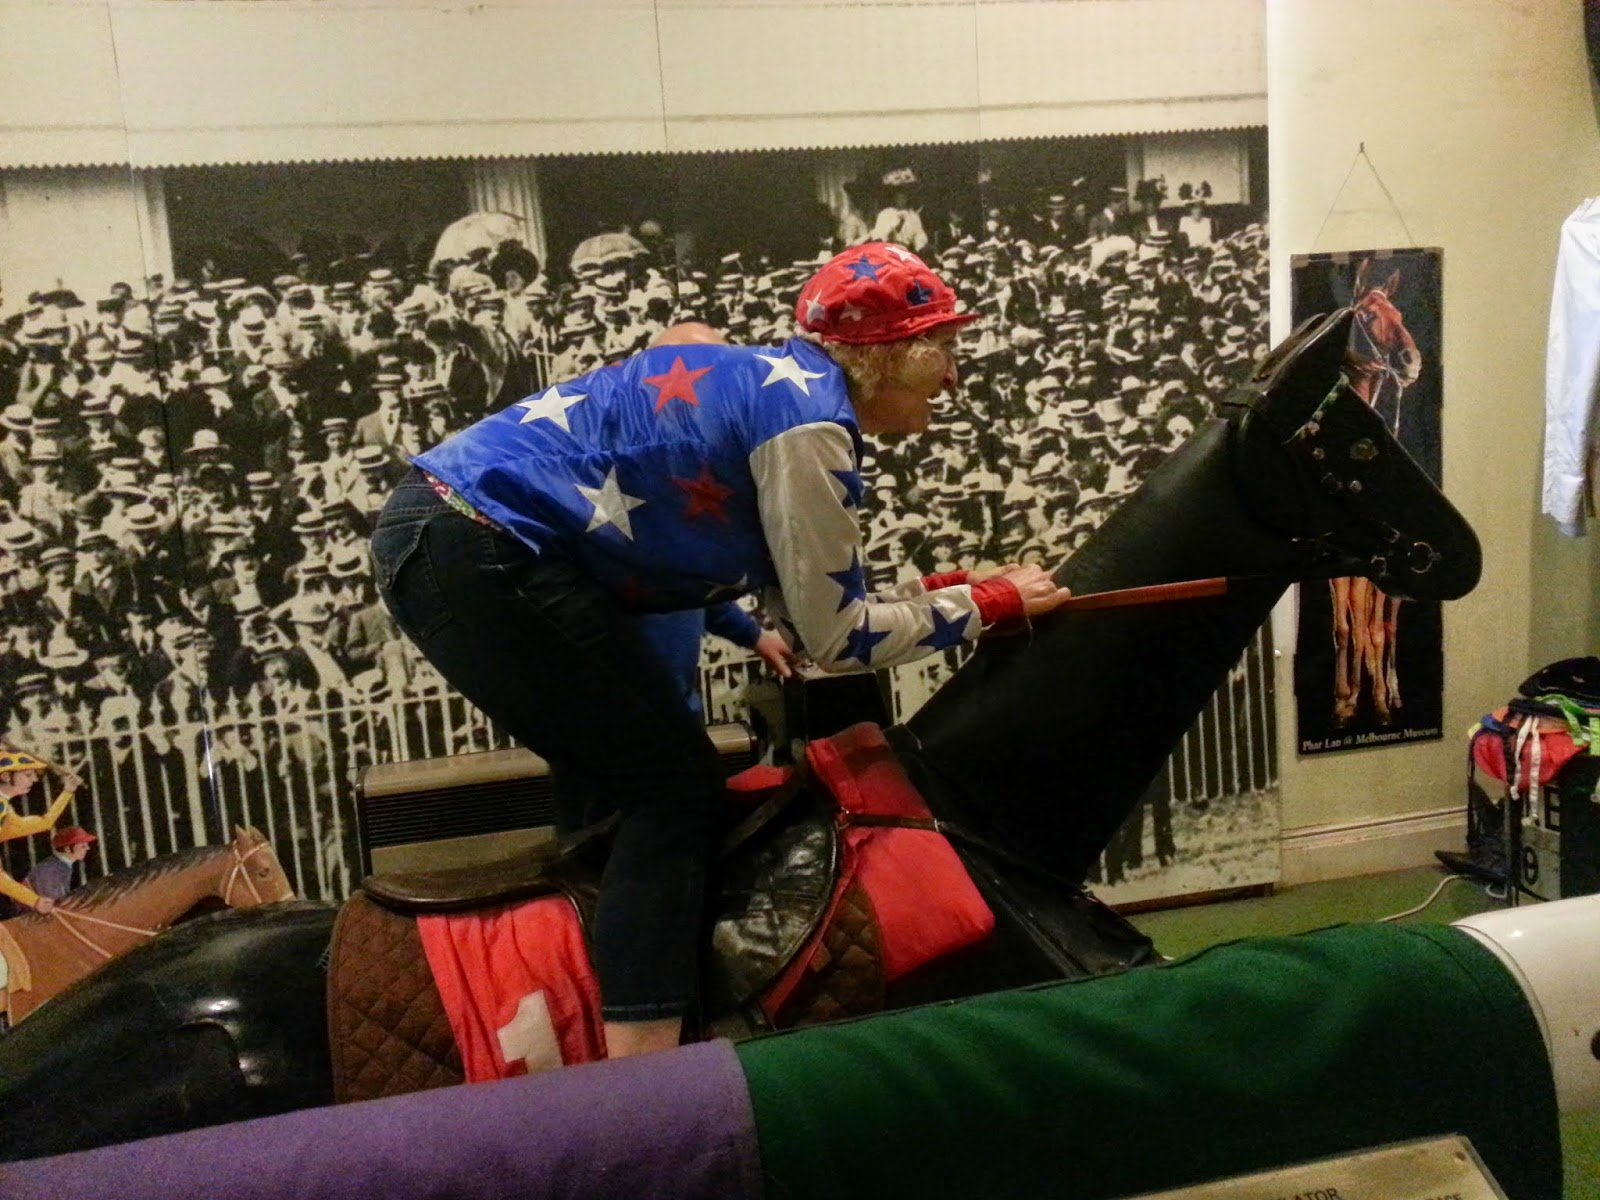 Riding replica horse at Newmarket's National Horse Racing Museum in England